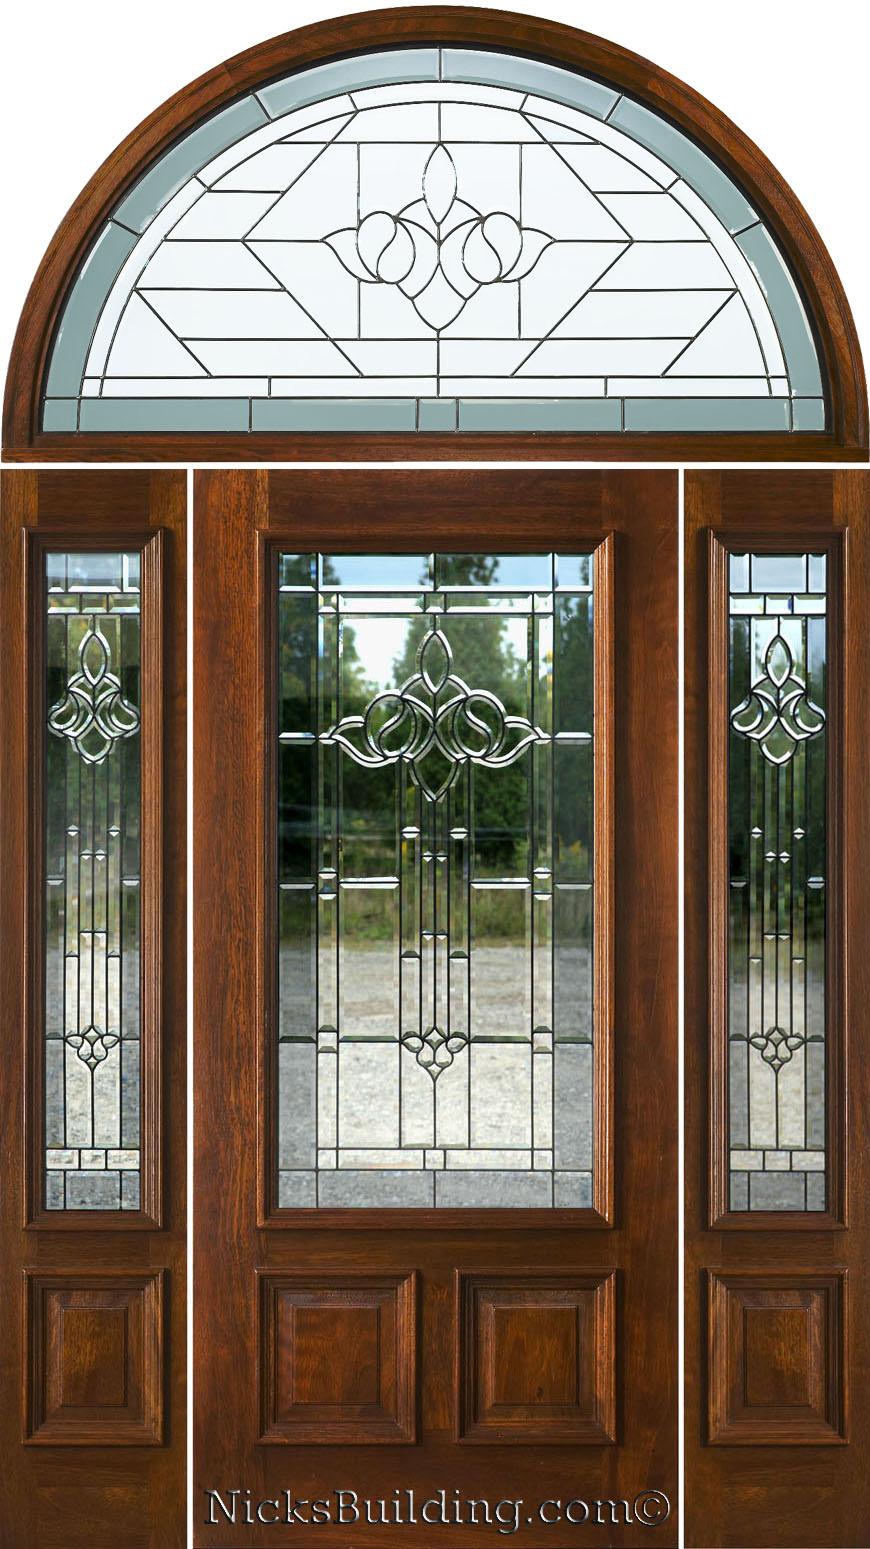 Exterior doors with half round transoms arched transoms for Half round buildings